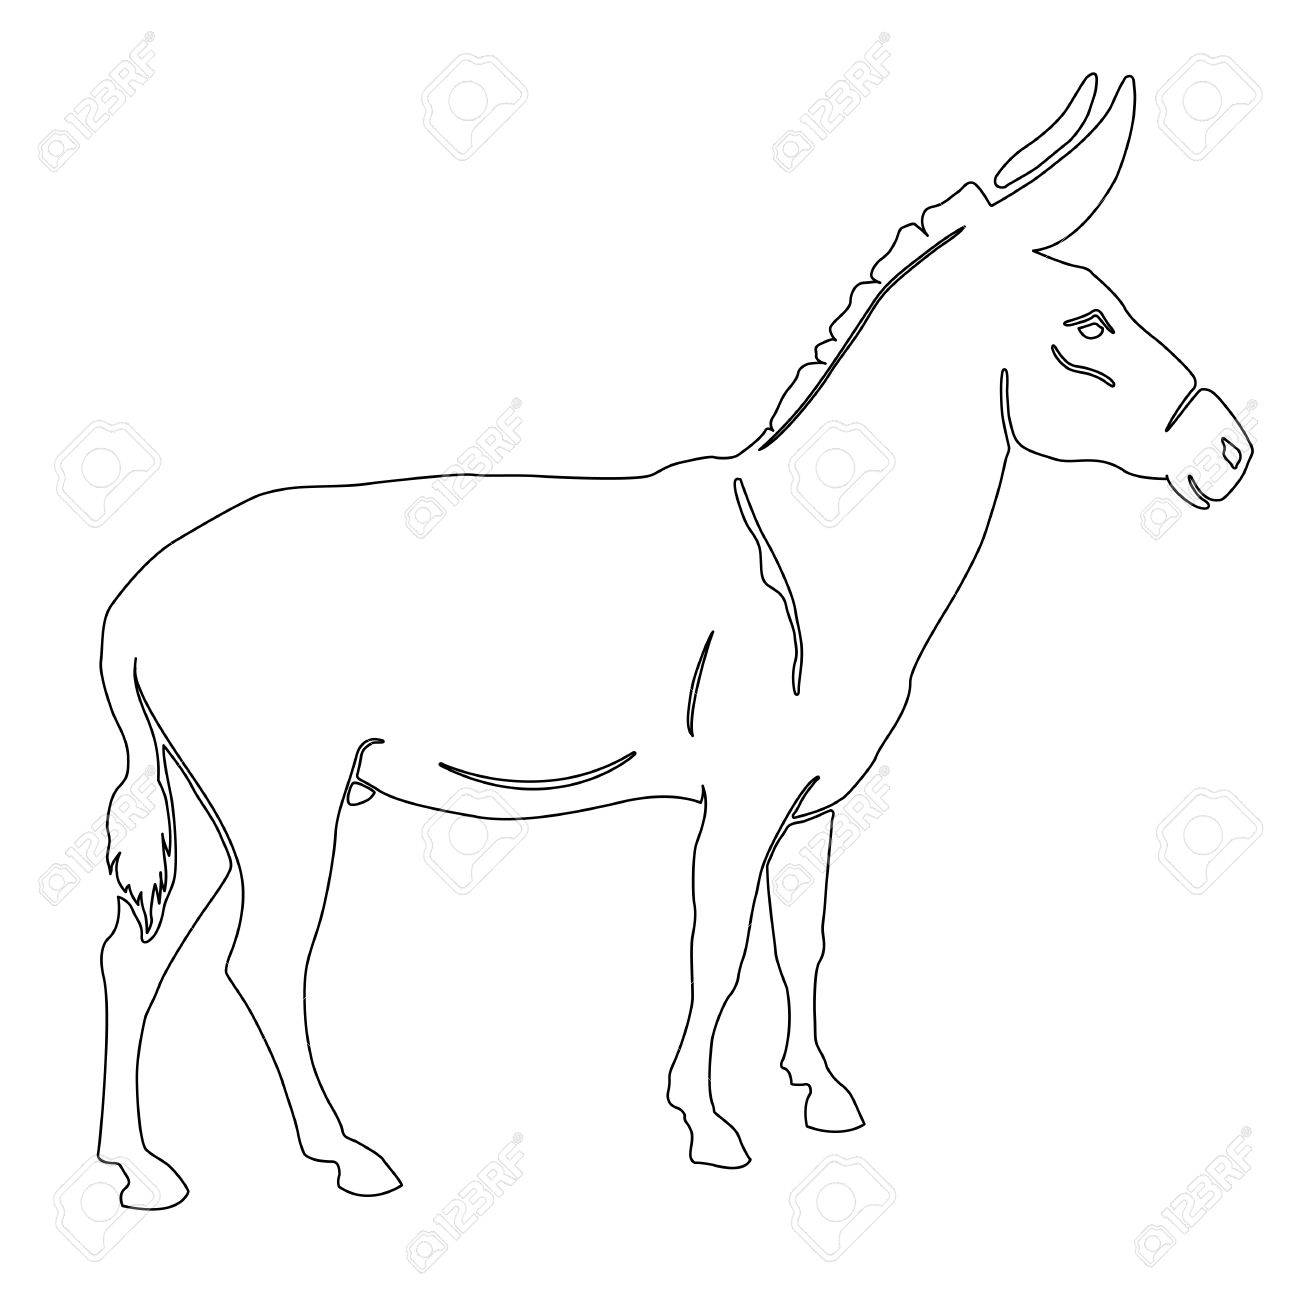 1300x1300 Donkey Outline Drawing Stock Photo, Picture And Royalty Free Image